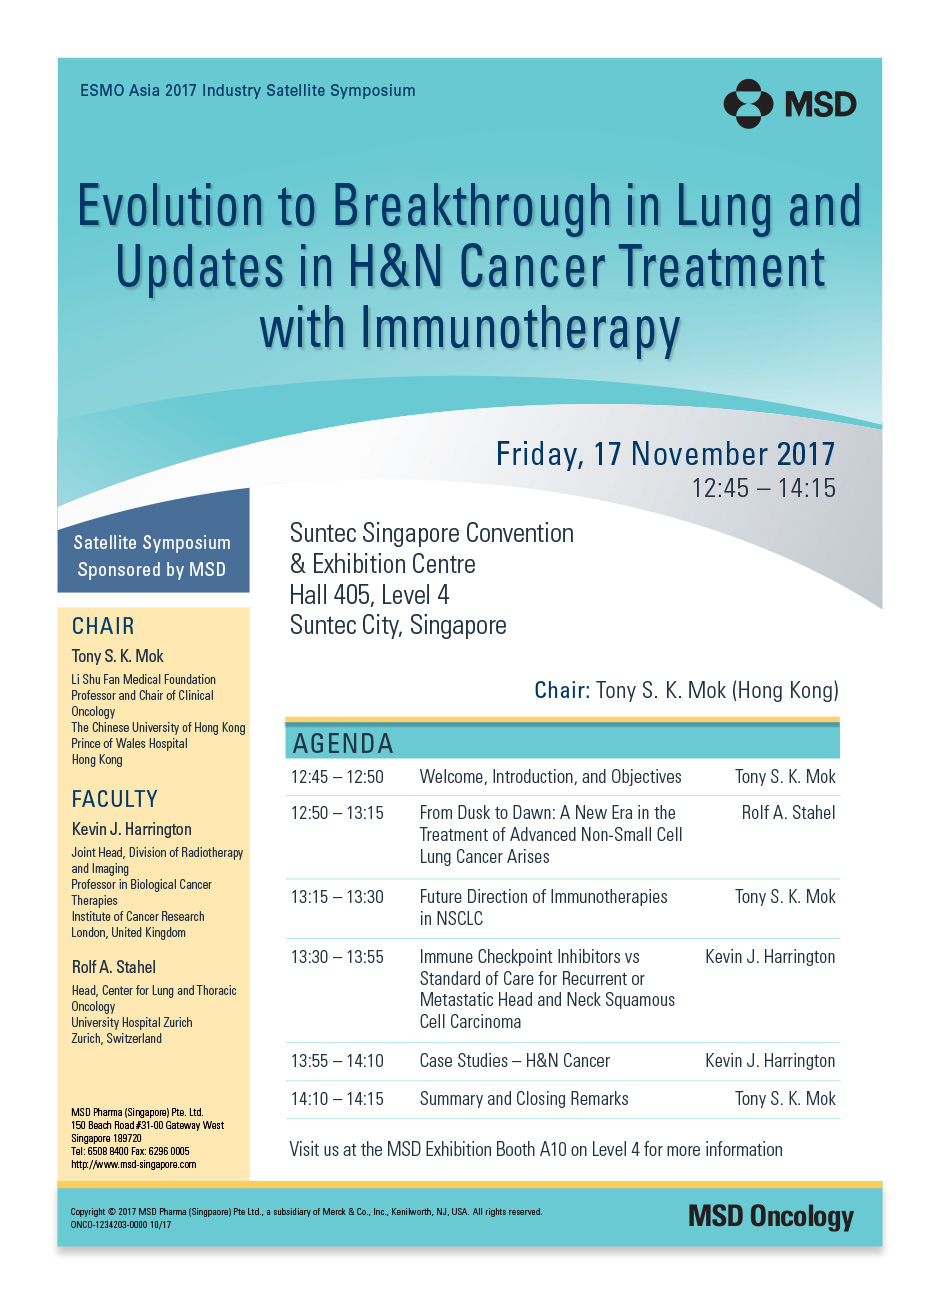 Evolution to Breakthrough in Lung and Updates in H&N Cancer Treatment with Immunotherapy